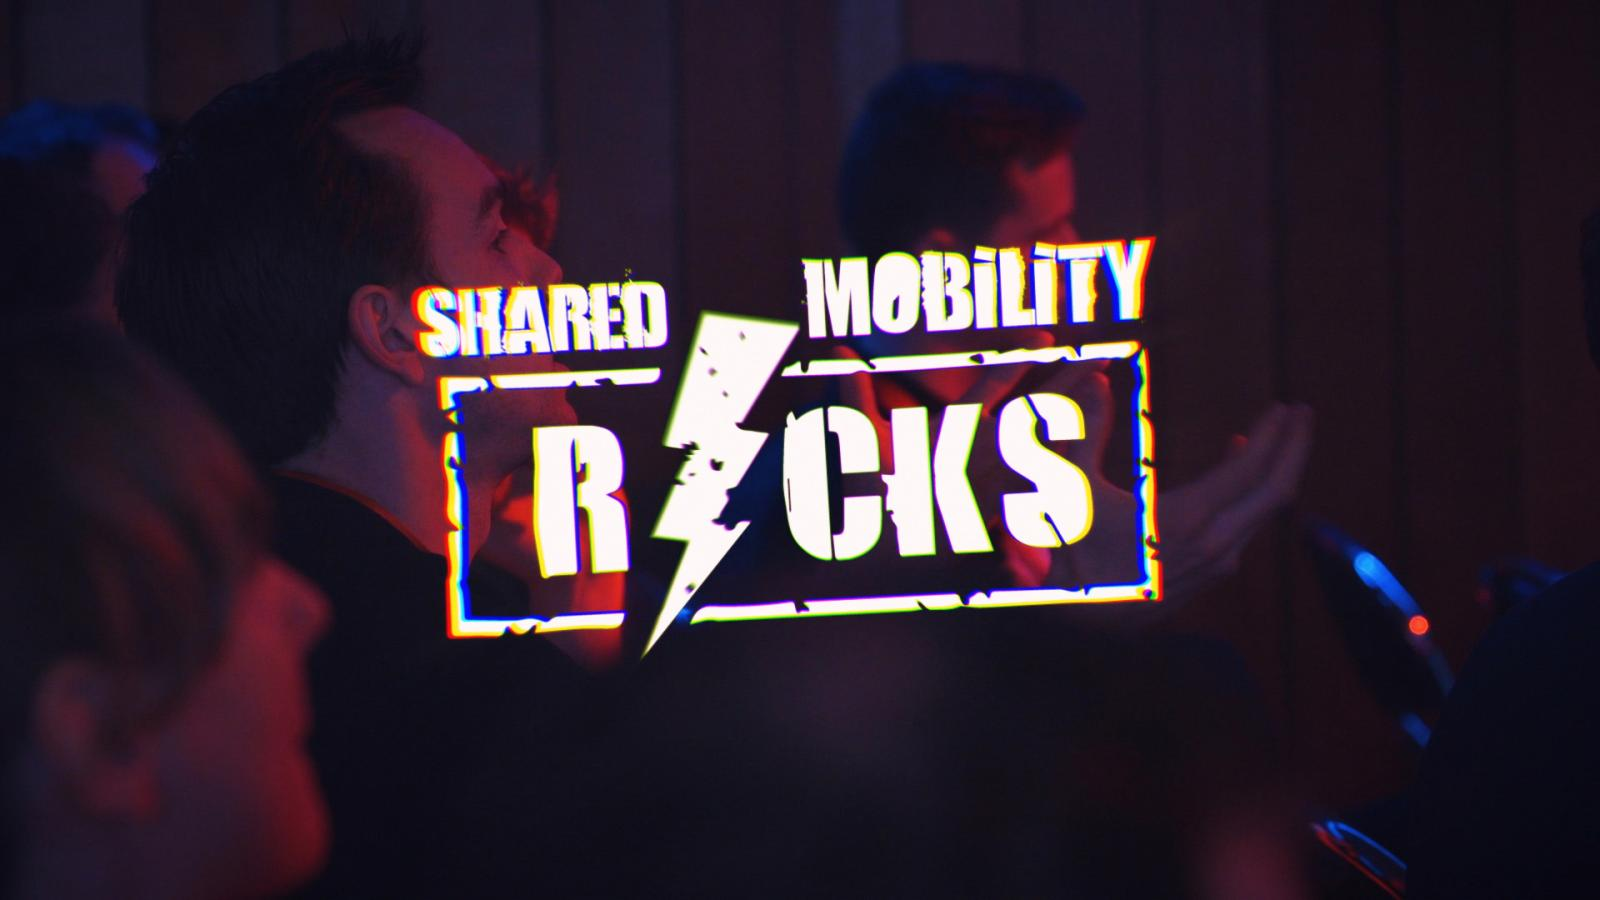 logo shared mobility rocks